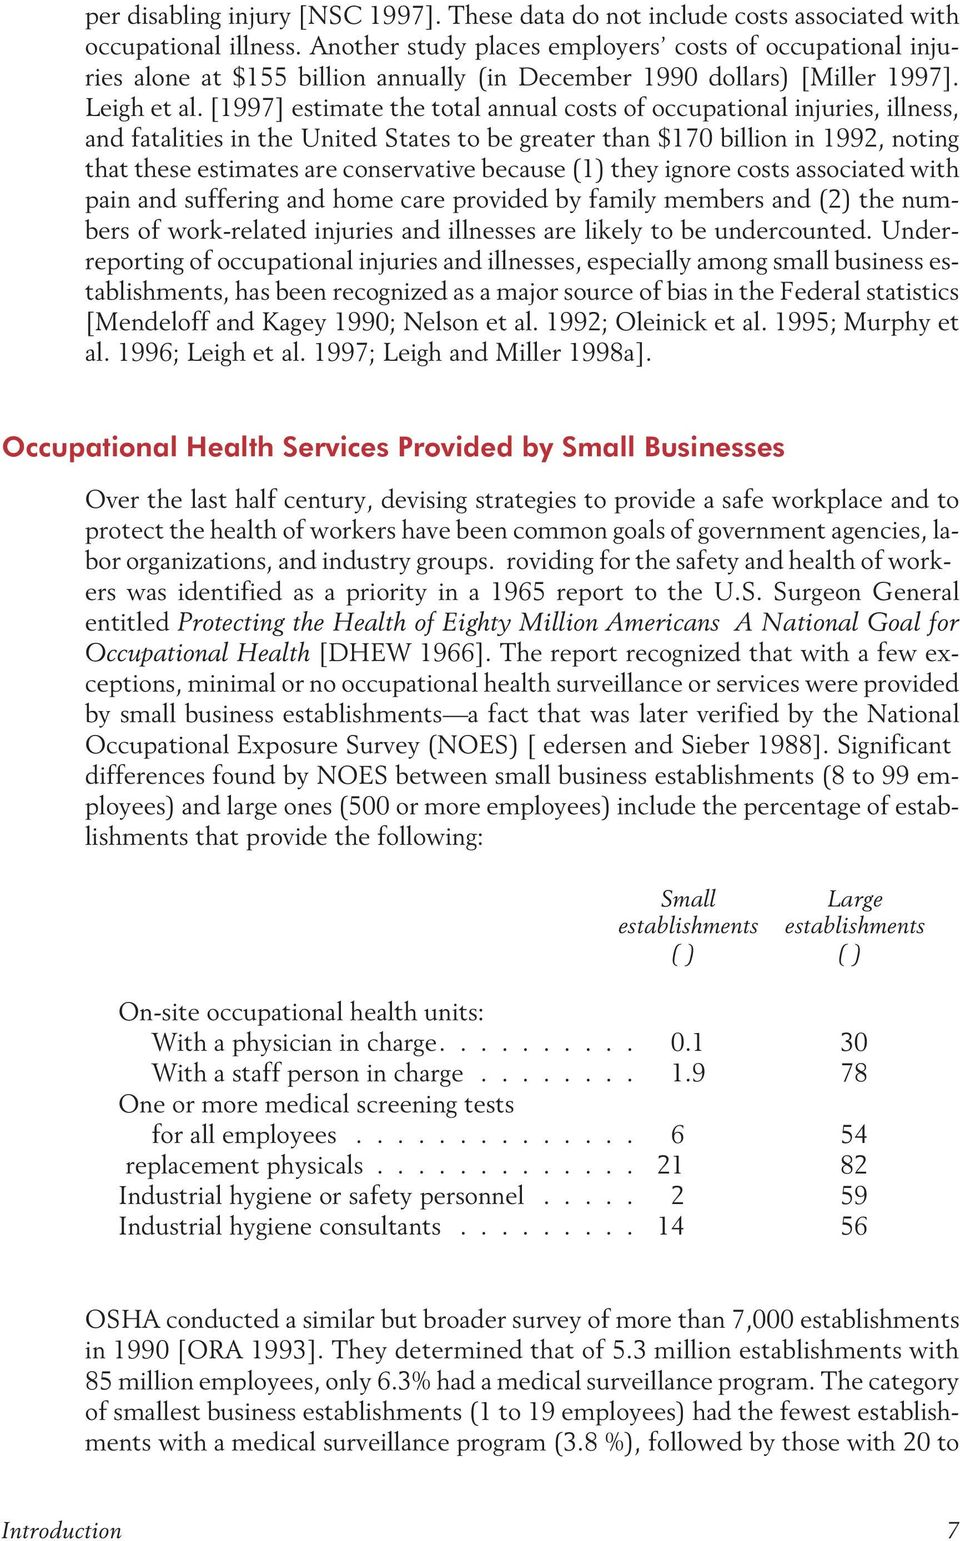 [1997] estimate the total annual costs of occupational injuries, illness, and fatalities in the United States to be greater than $170 billion in 1992, noting that these estimates are conservative